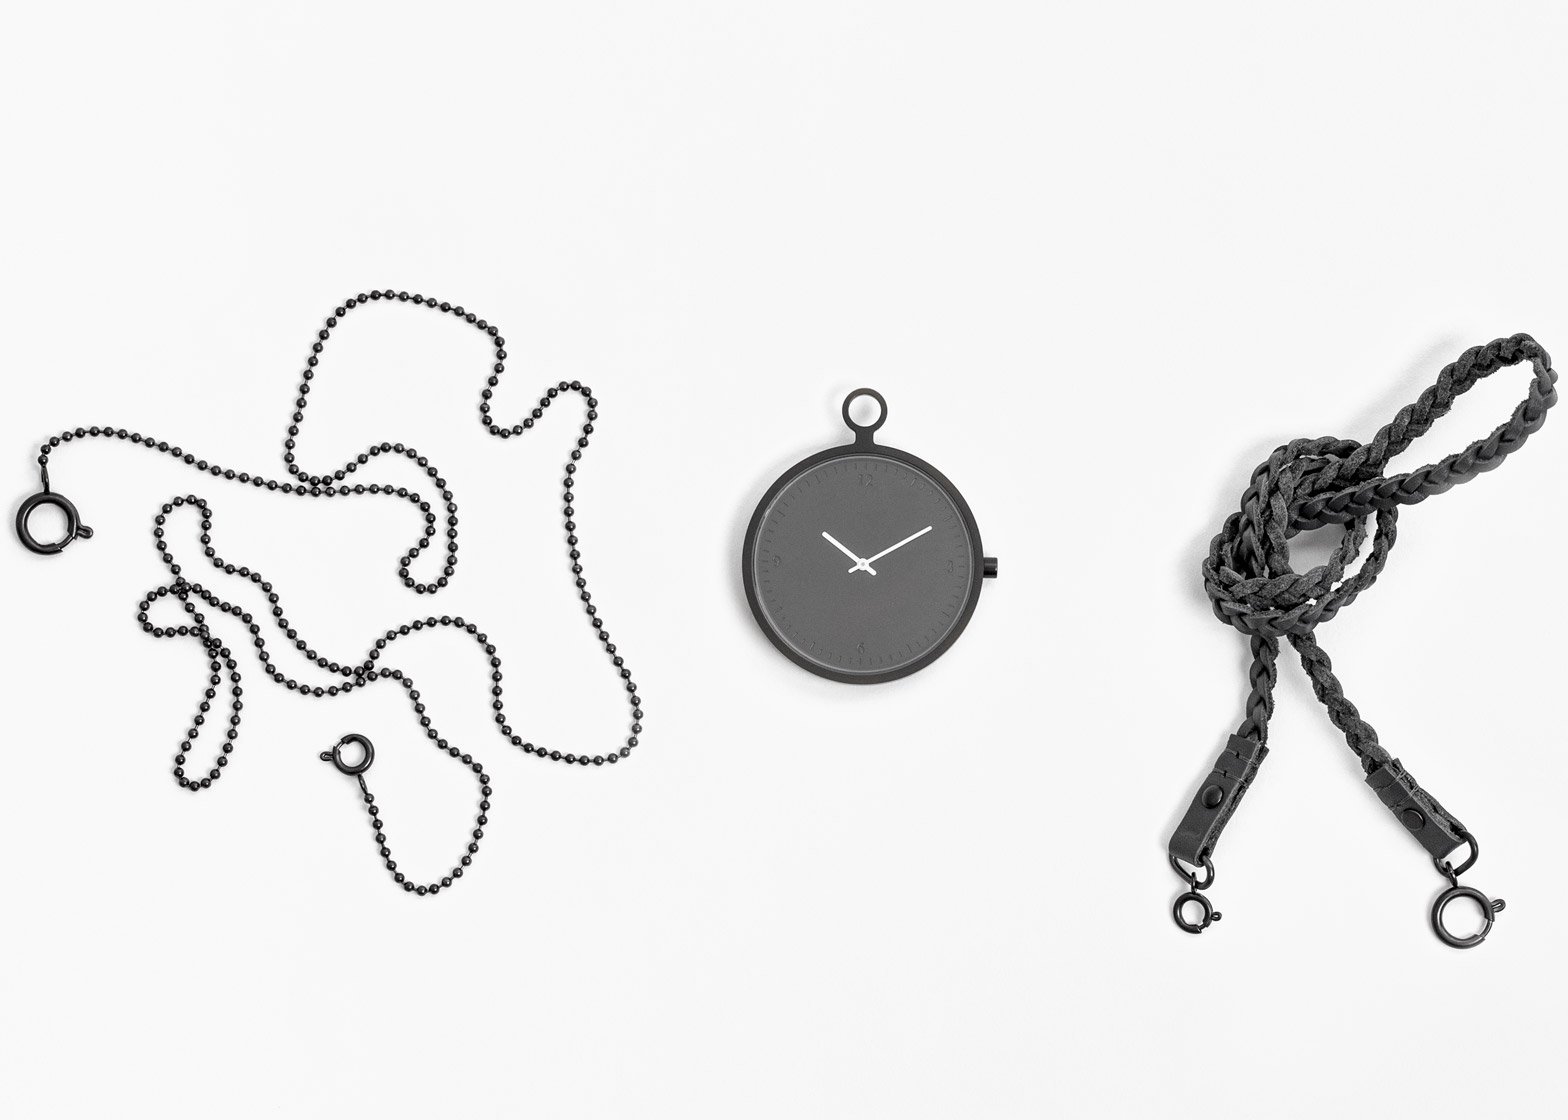 Axcent pocket watch by People People